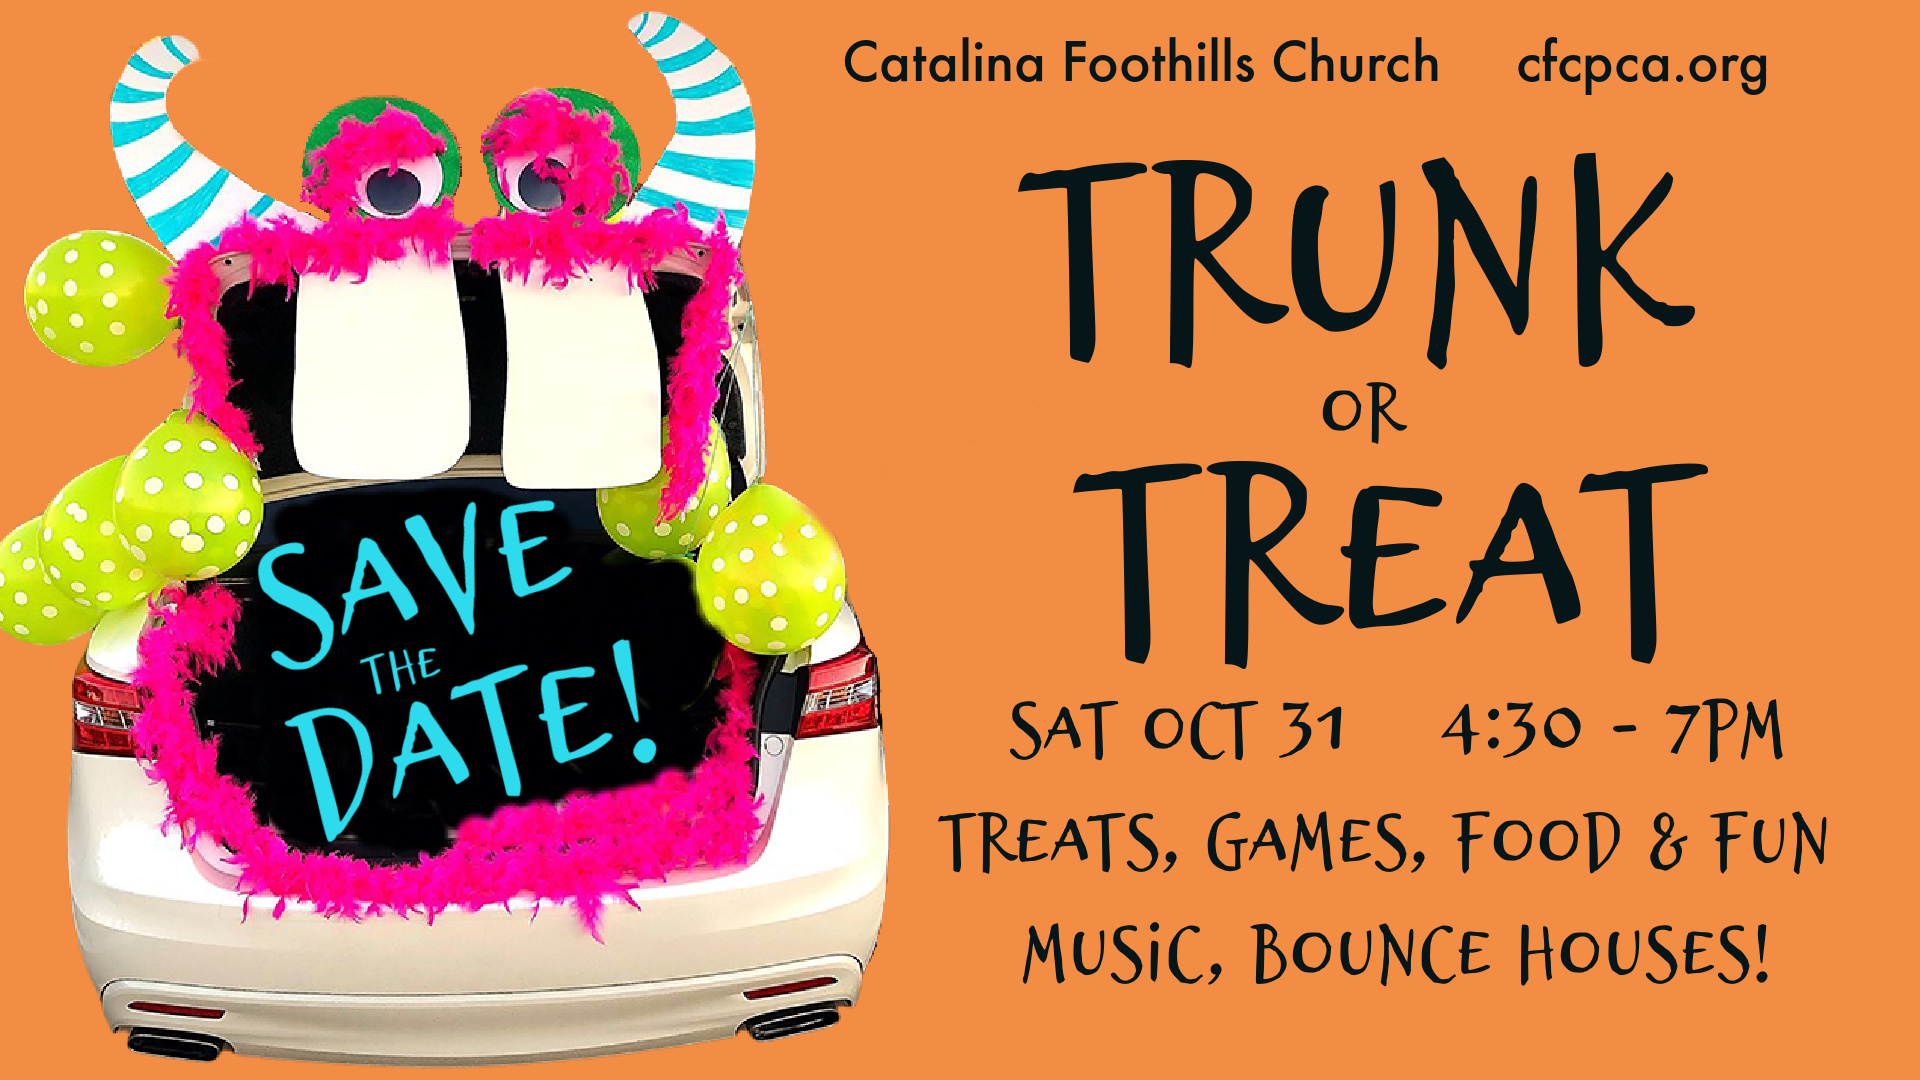 Trunk or Treat 1920 x 1080